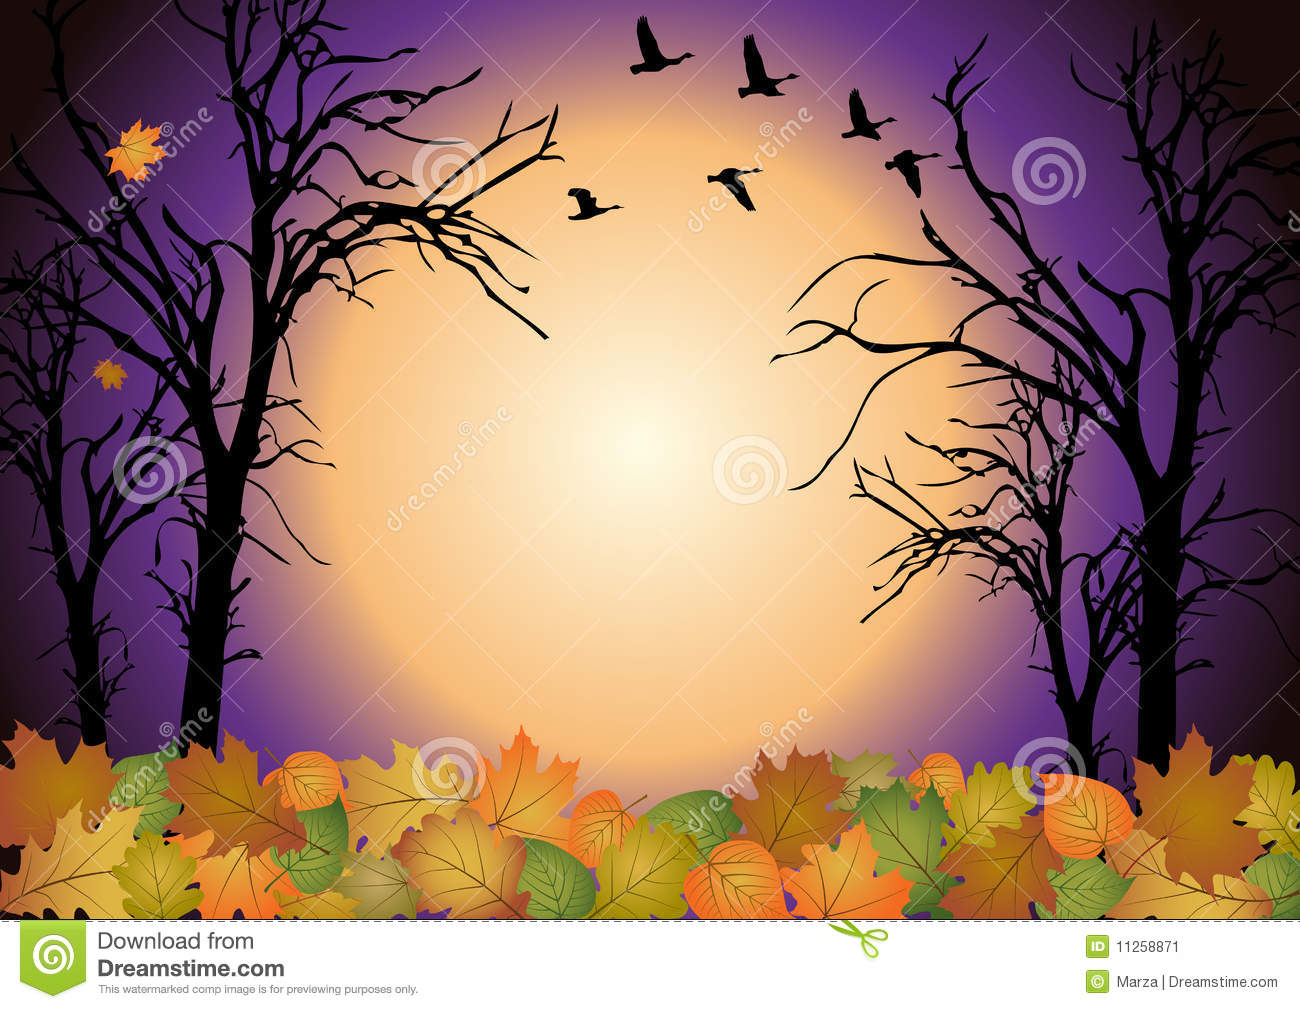 Fall scenery stock vector. Illustration of forest, graphic ...